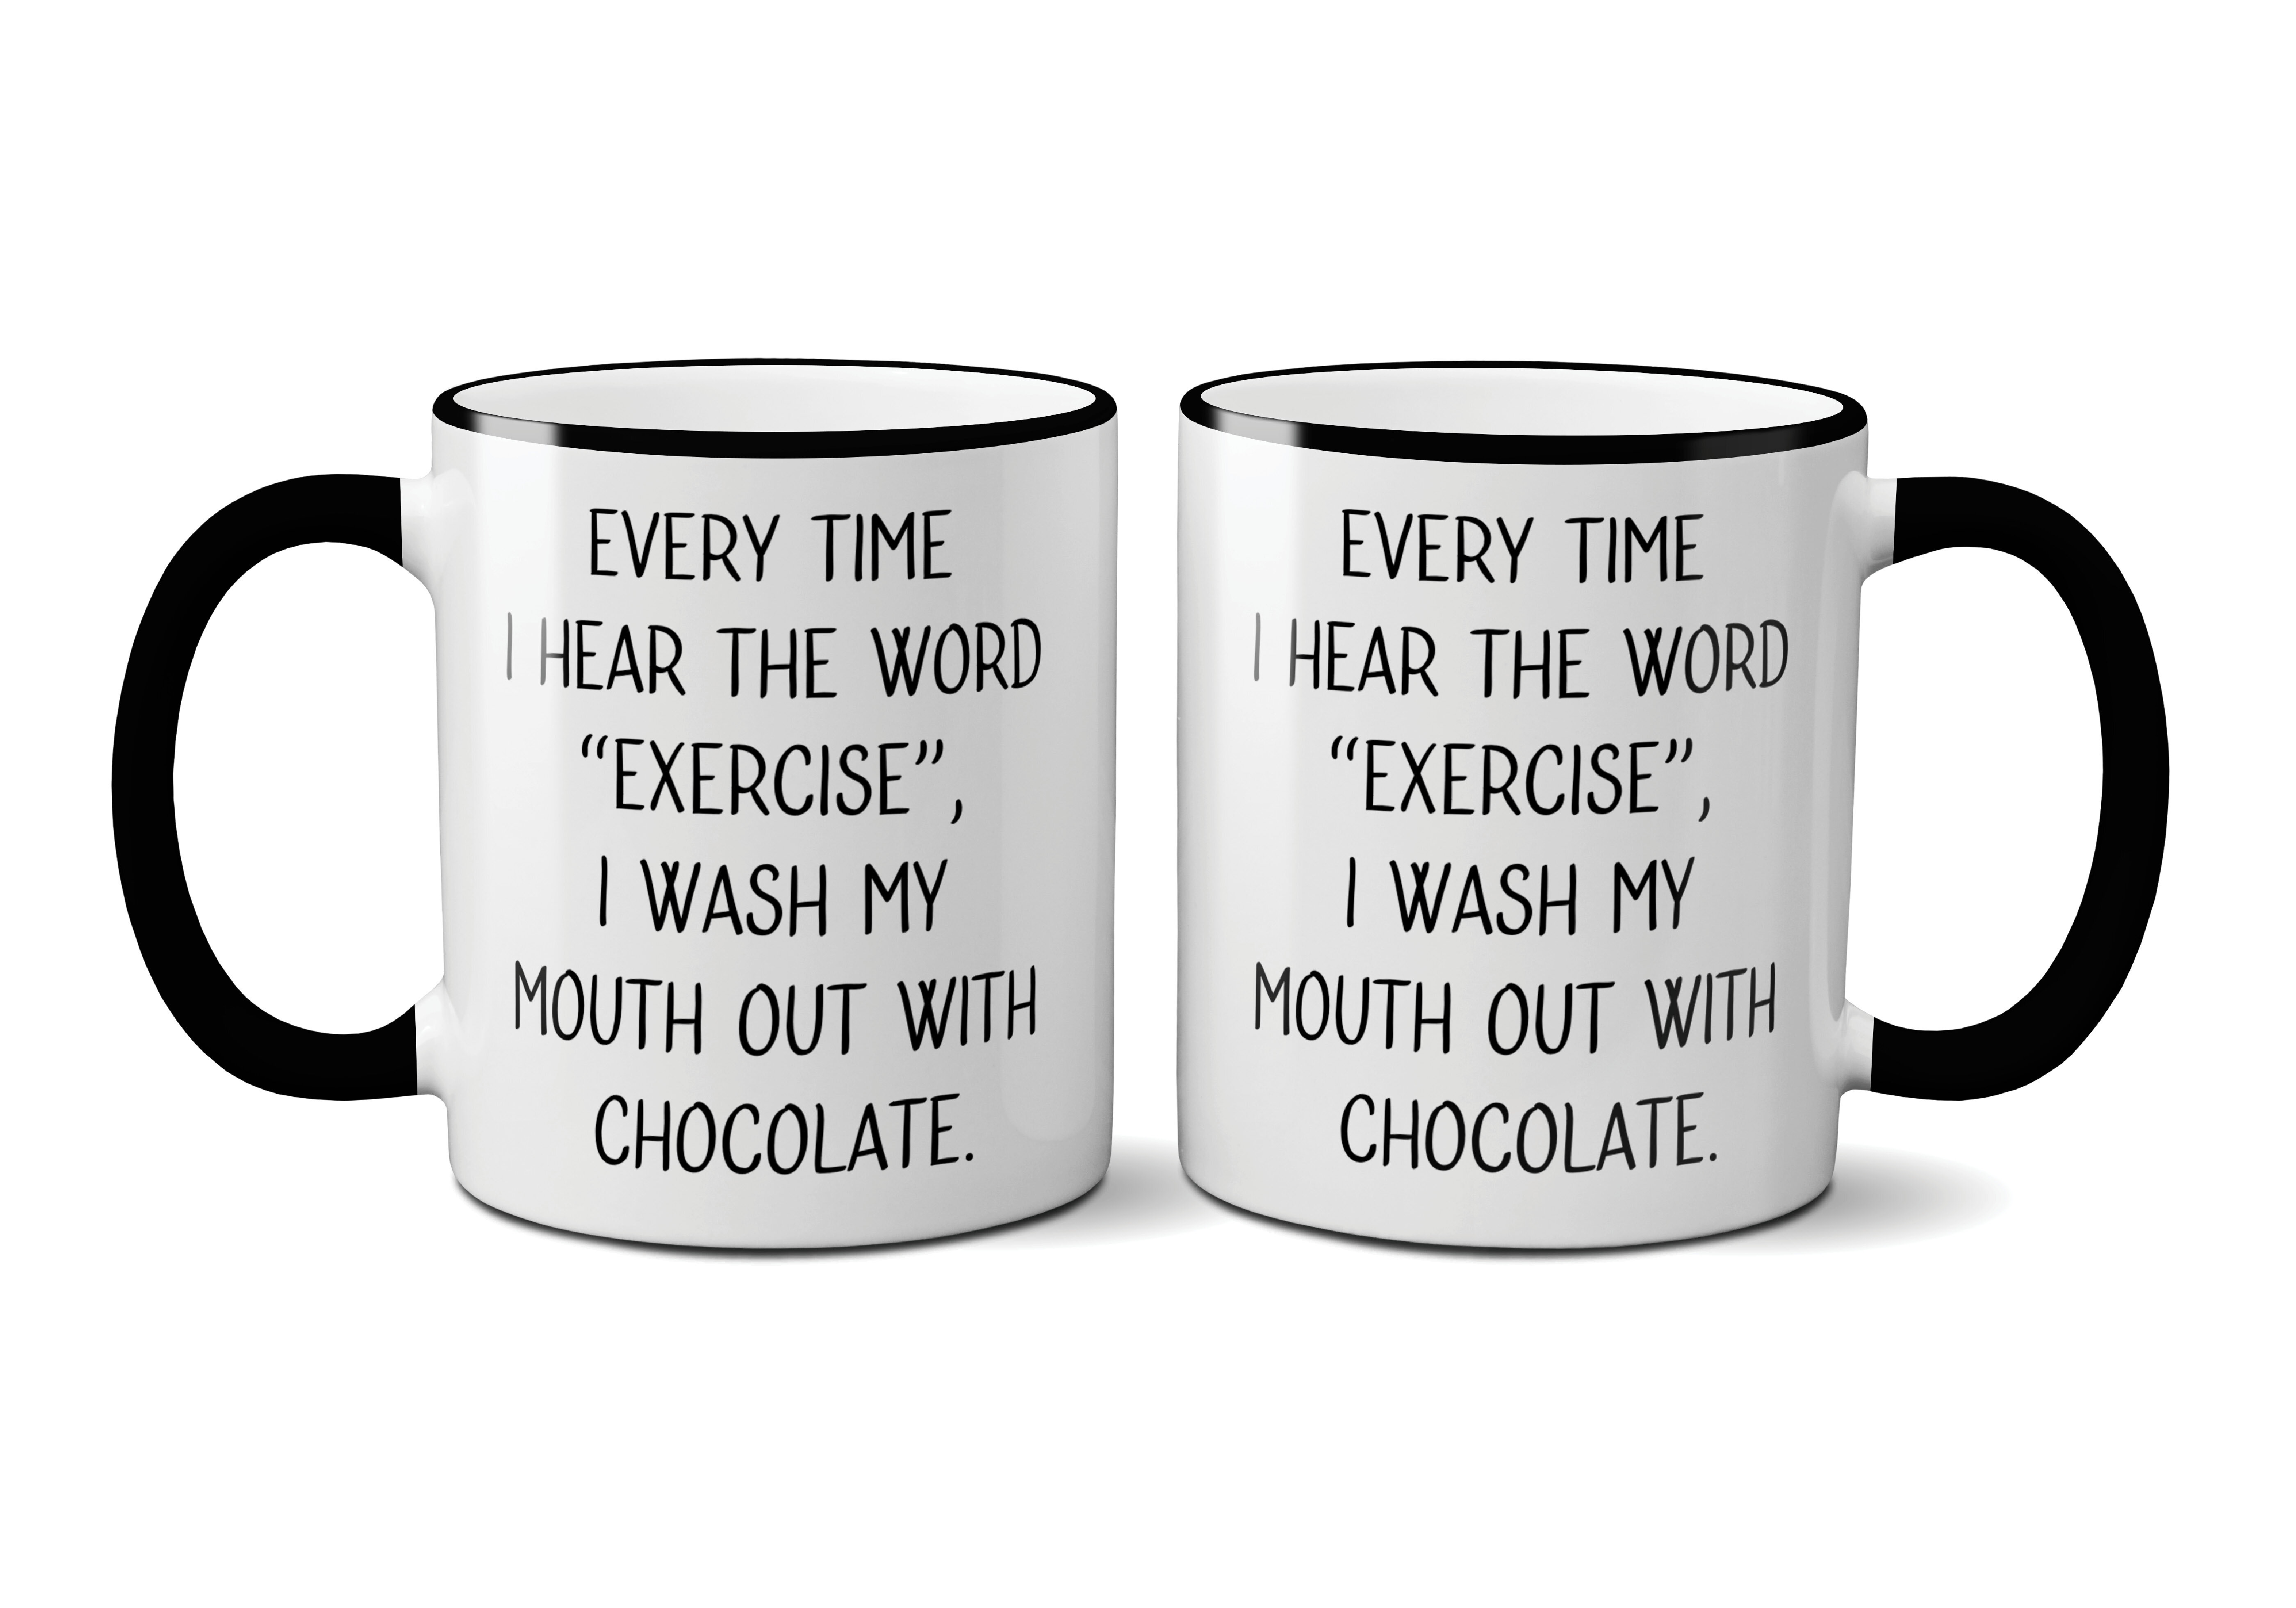 Ebern Designs Digiacomo Every Time I Hear The Word Exercise I Wash My Mouth Out With Chocolate Coffee Mug Wayfair